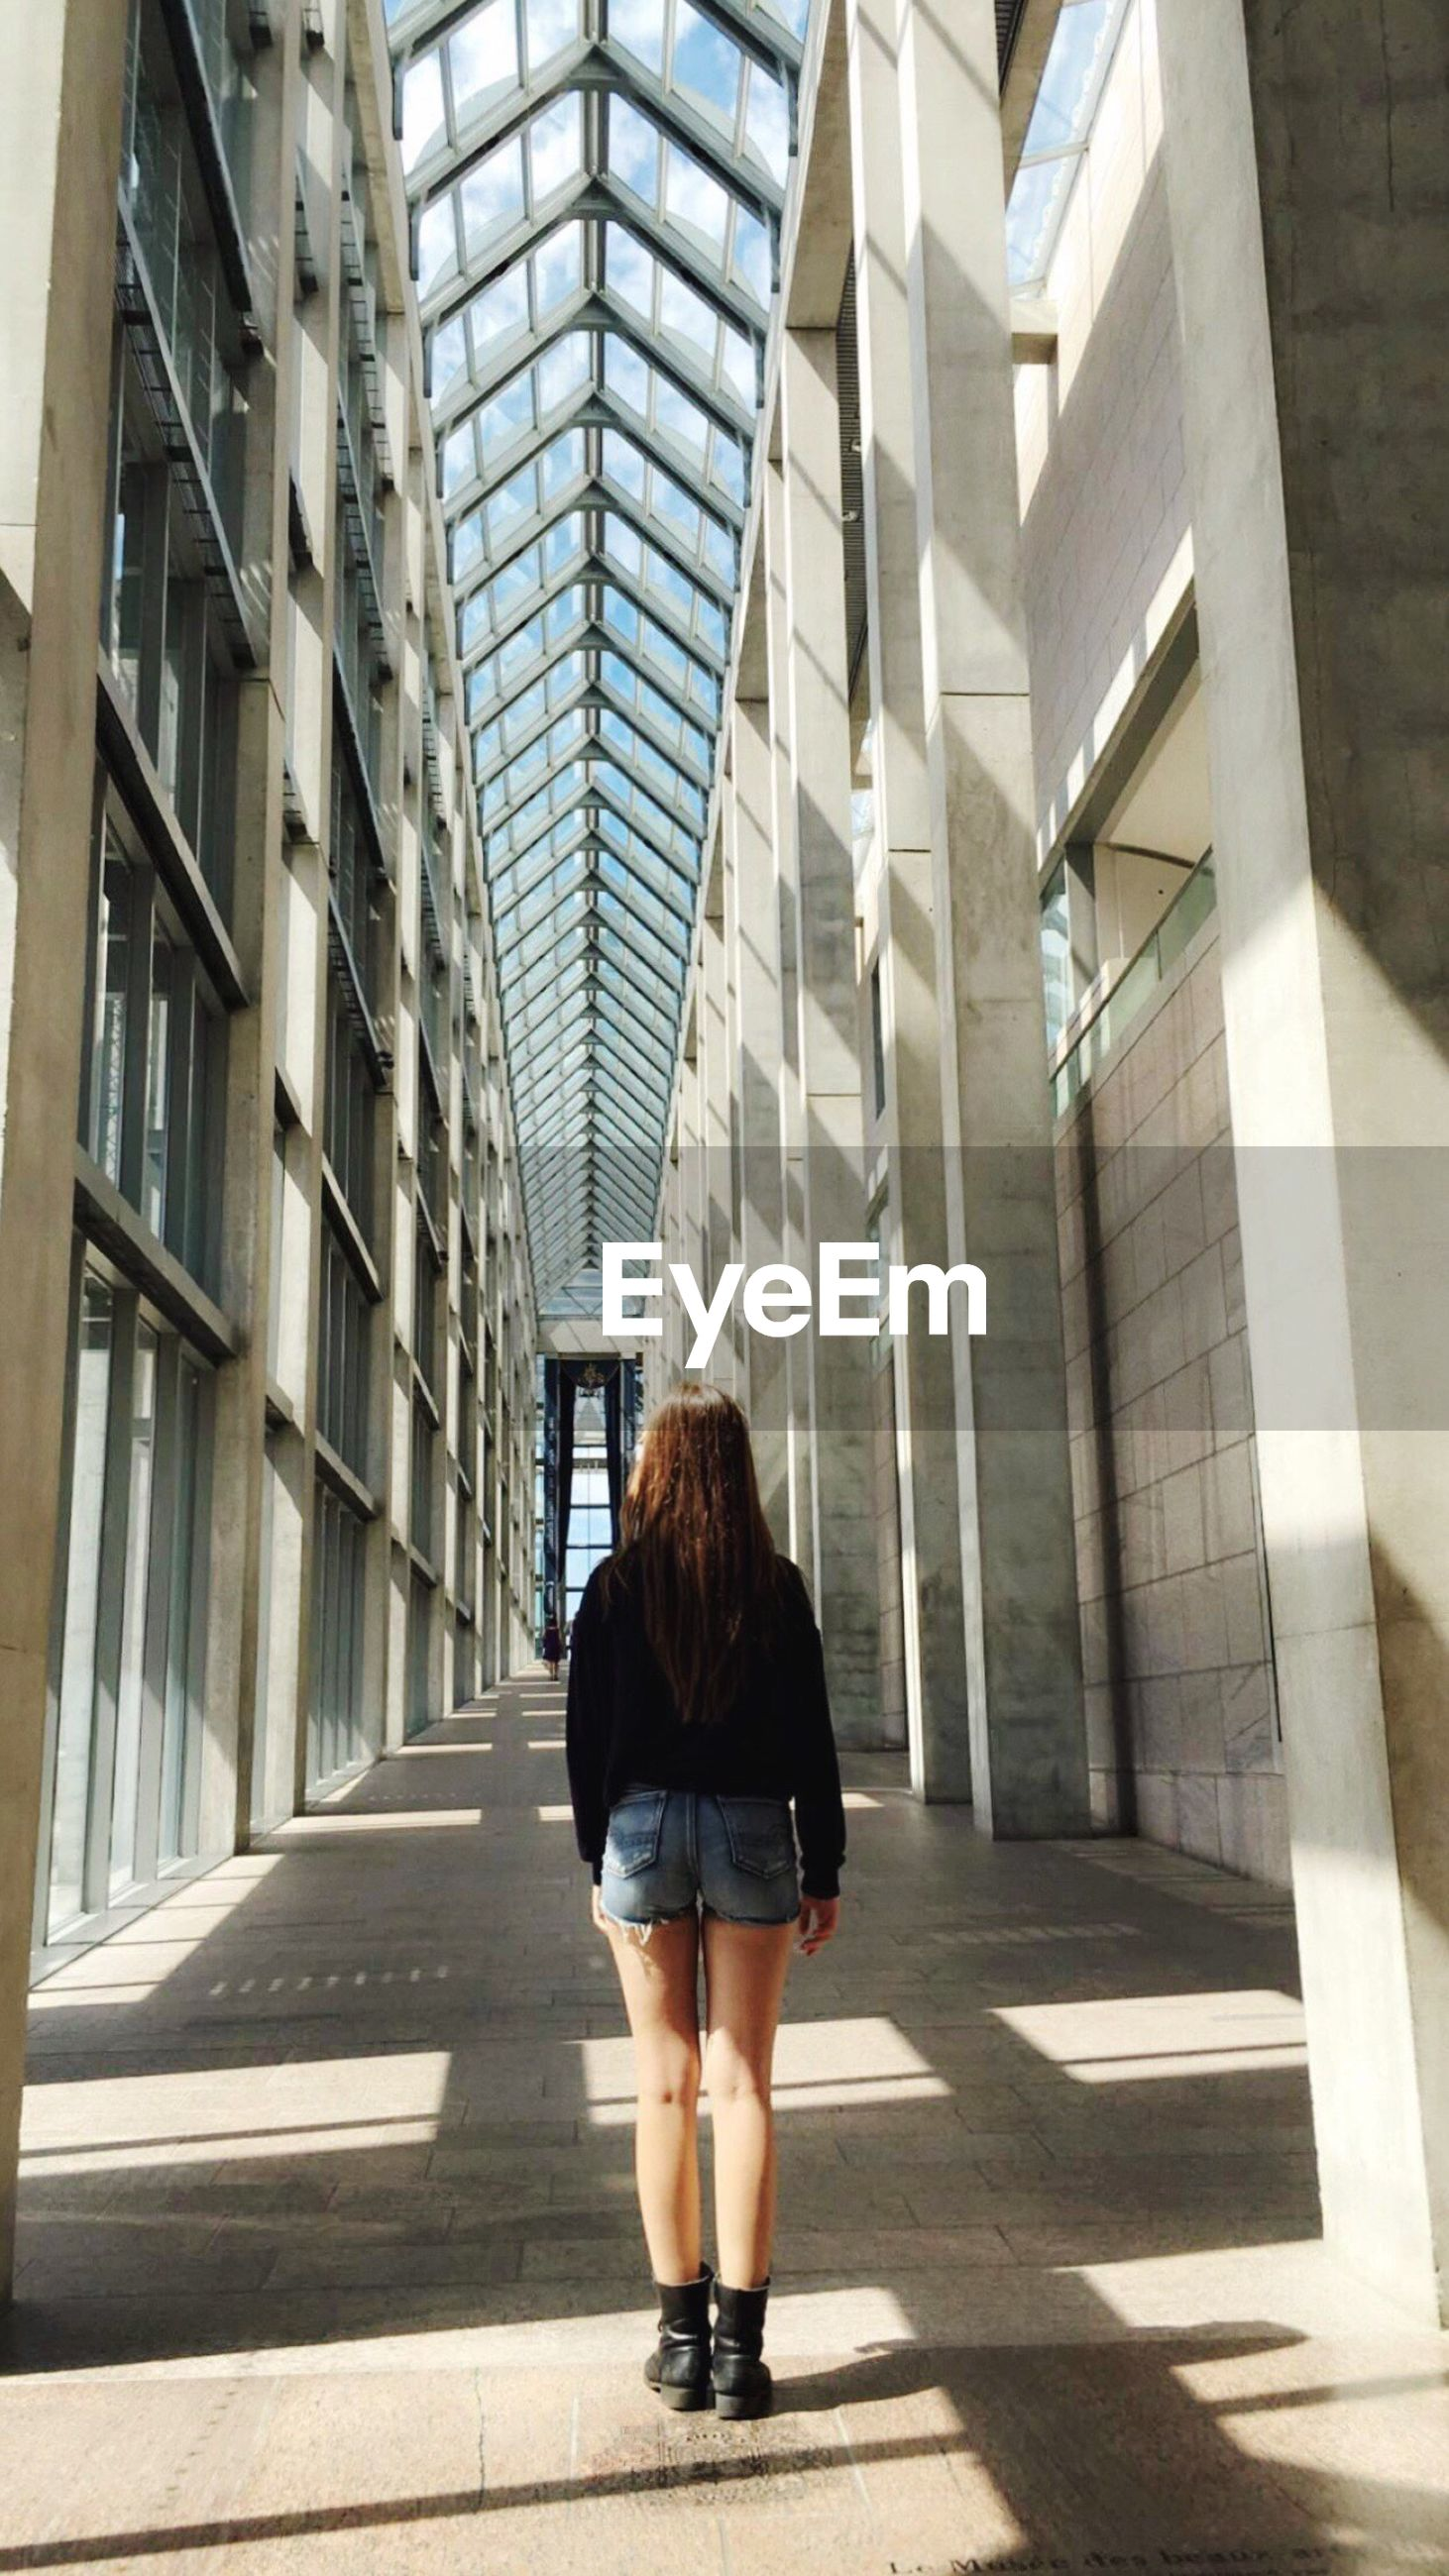 architecture, built structure, full length, lifestyles, casual clothing, building exterior, office building, young adult, day, the way forward, modern, tall - high, outdoors, person, financial district, city life, leading, diminishing perspective